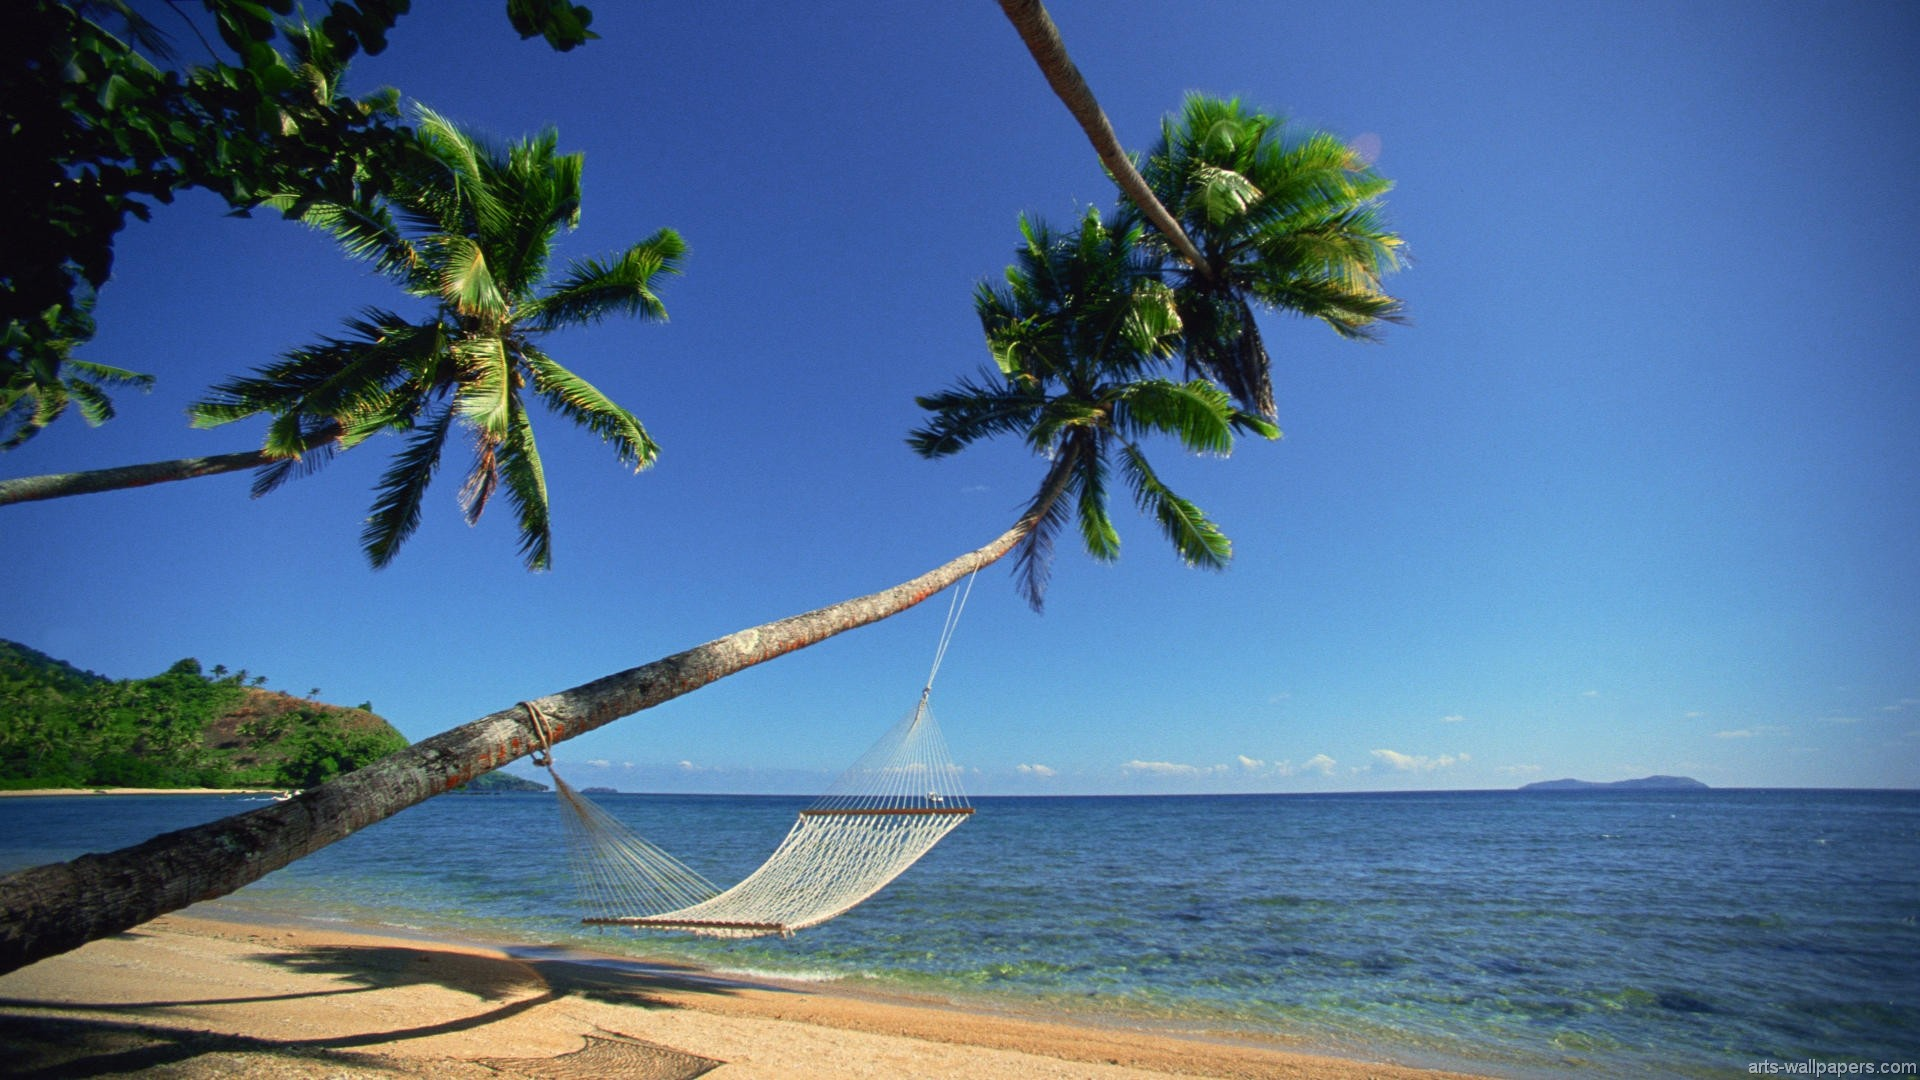 1920x1080 Tropical Beach Hammock Hd Wallpapers Lzamgs px